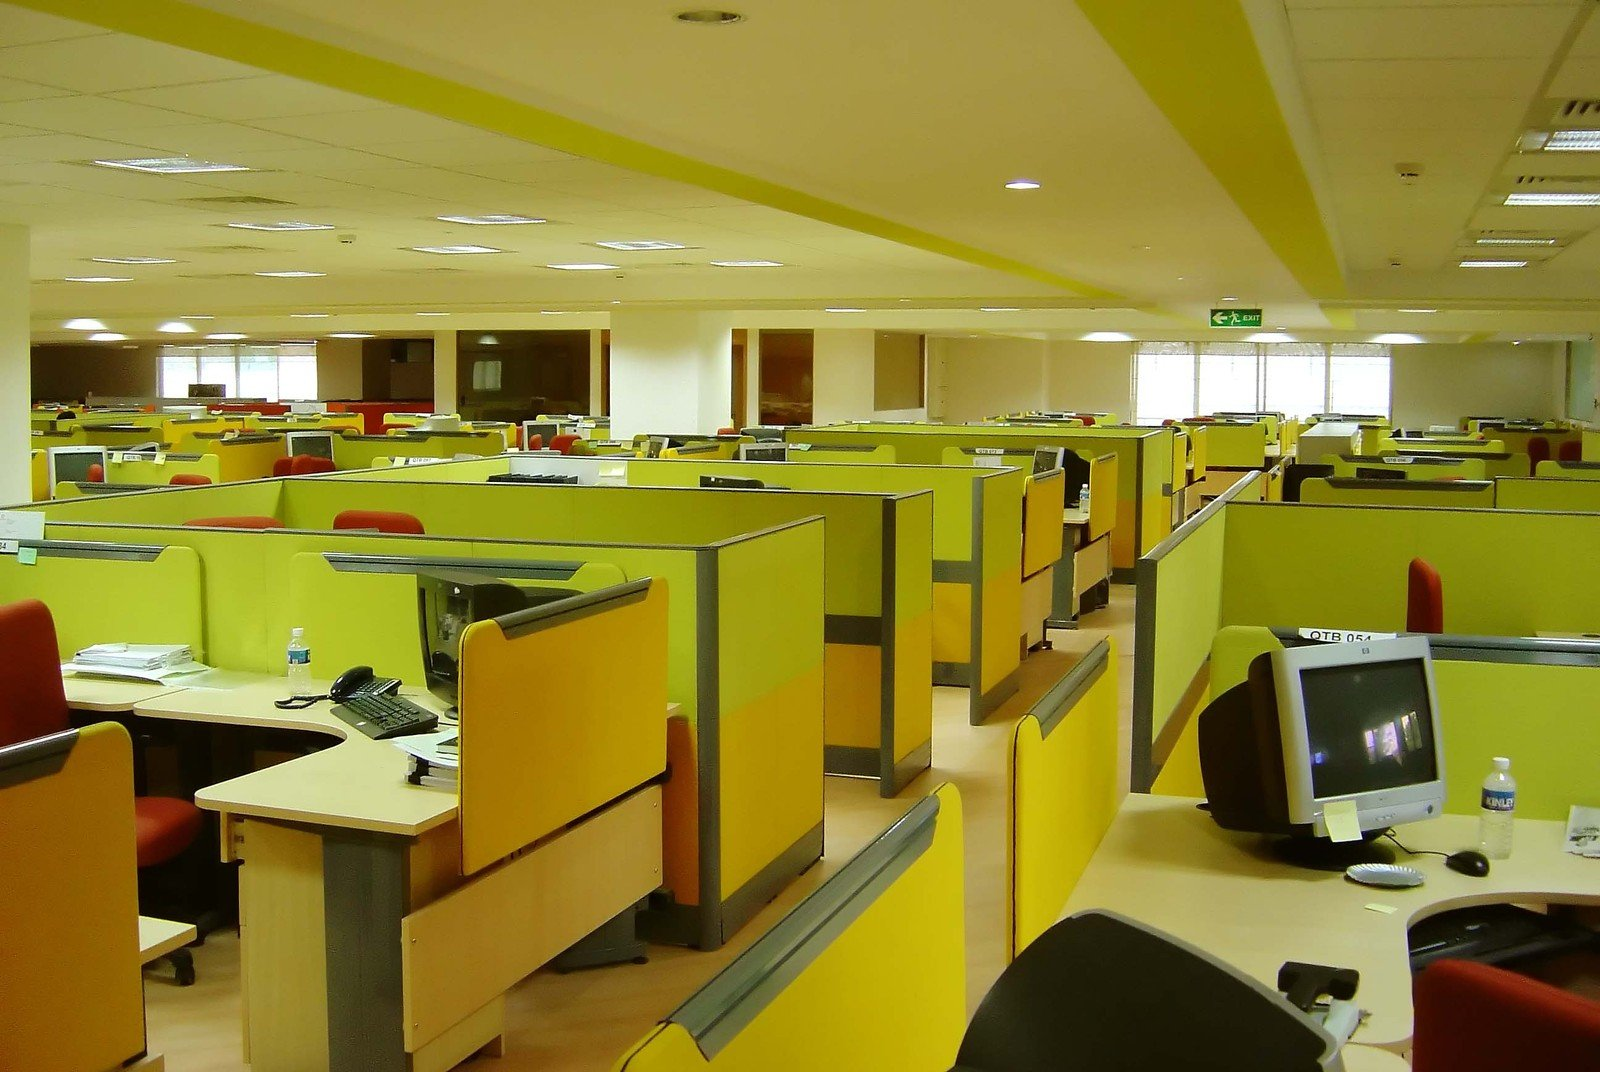 The Old Way - Cubicles as far as the eye can see. Not very inspiring.